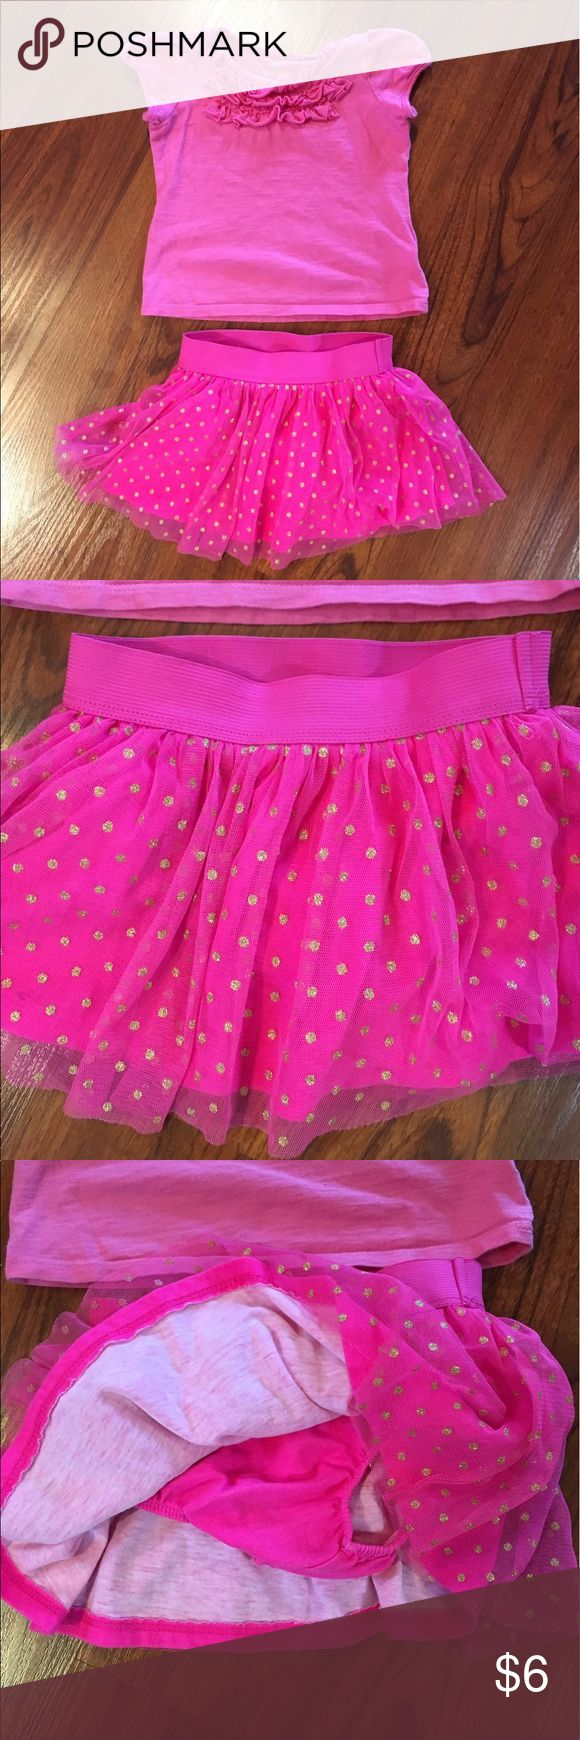 Okie Dokie 2 pcs 18M girls Both Okie Dokie brand. Skirt has tulle material with gold dots and a cotton layer underneath. Also has built in panty. Skirt has elastic waistband. Short sleeved tee has ruffled top. okie dokie Matching Sets